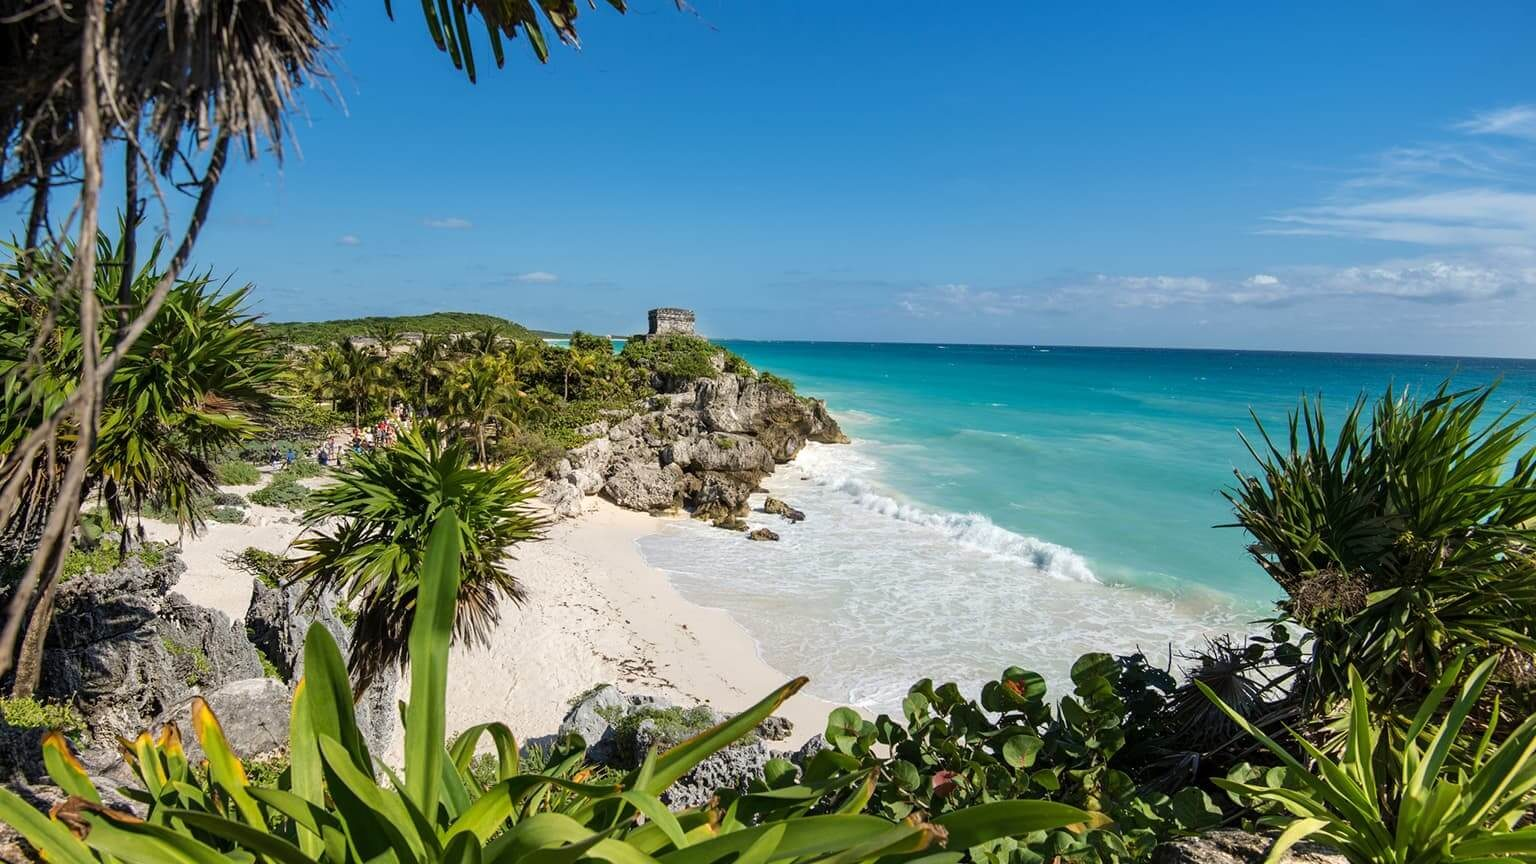 Ancient Ruins Of Tulum On Caribbean Sea In Mexico